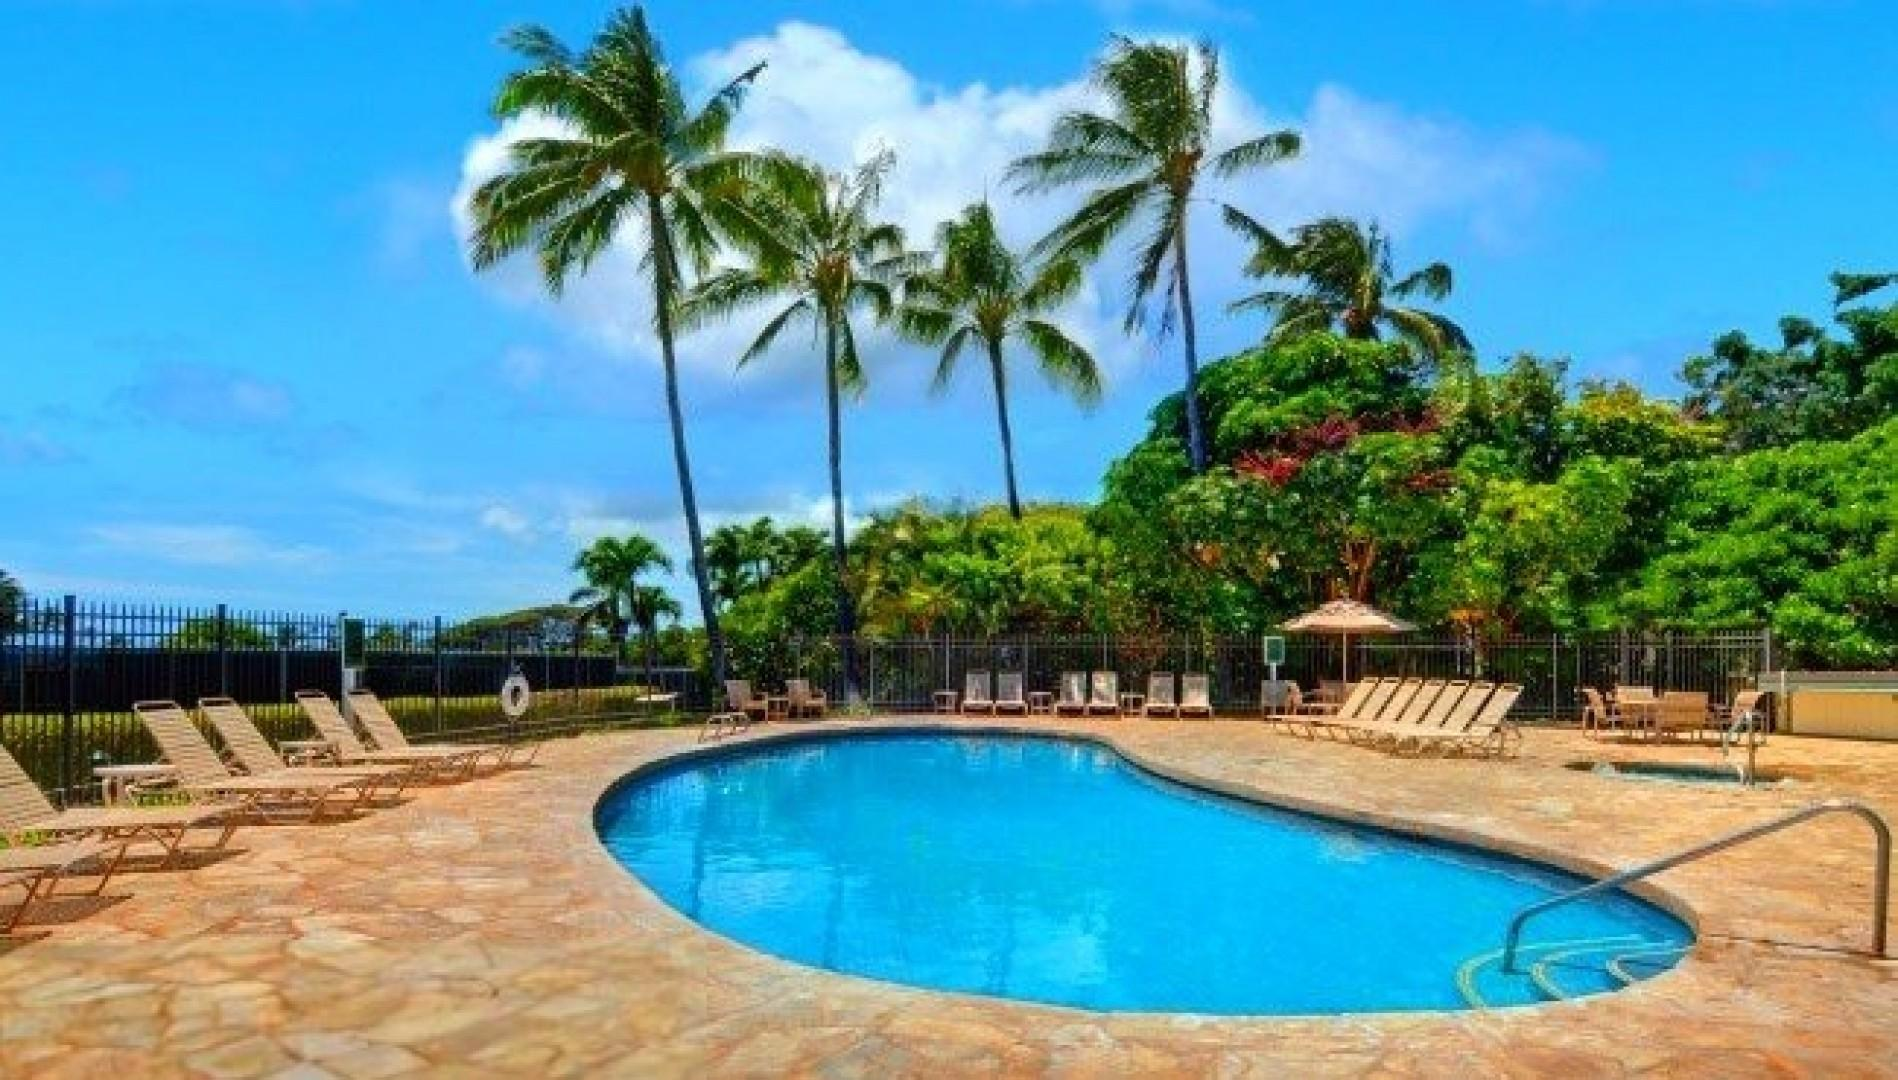 Poipu Kai Association Pool